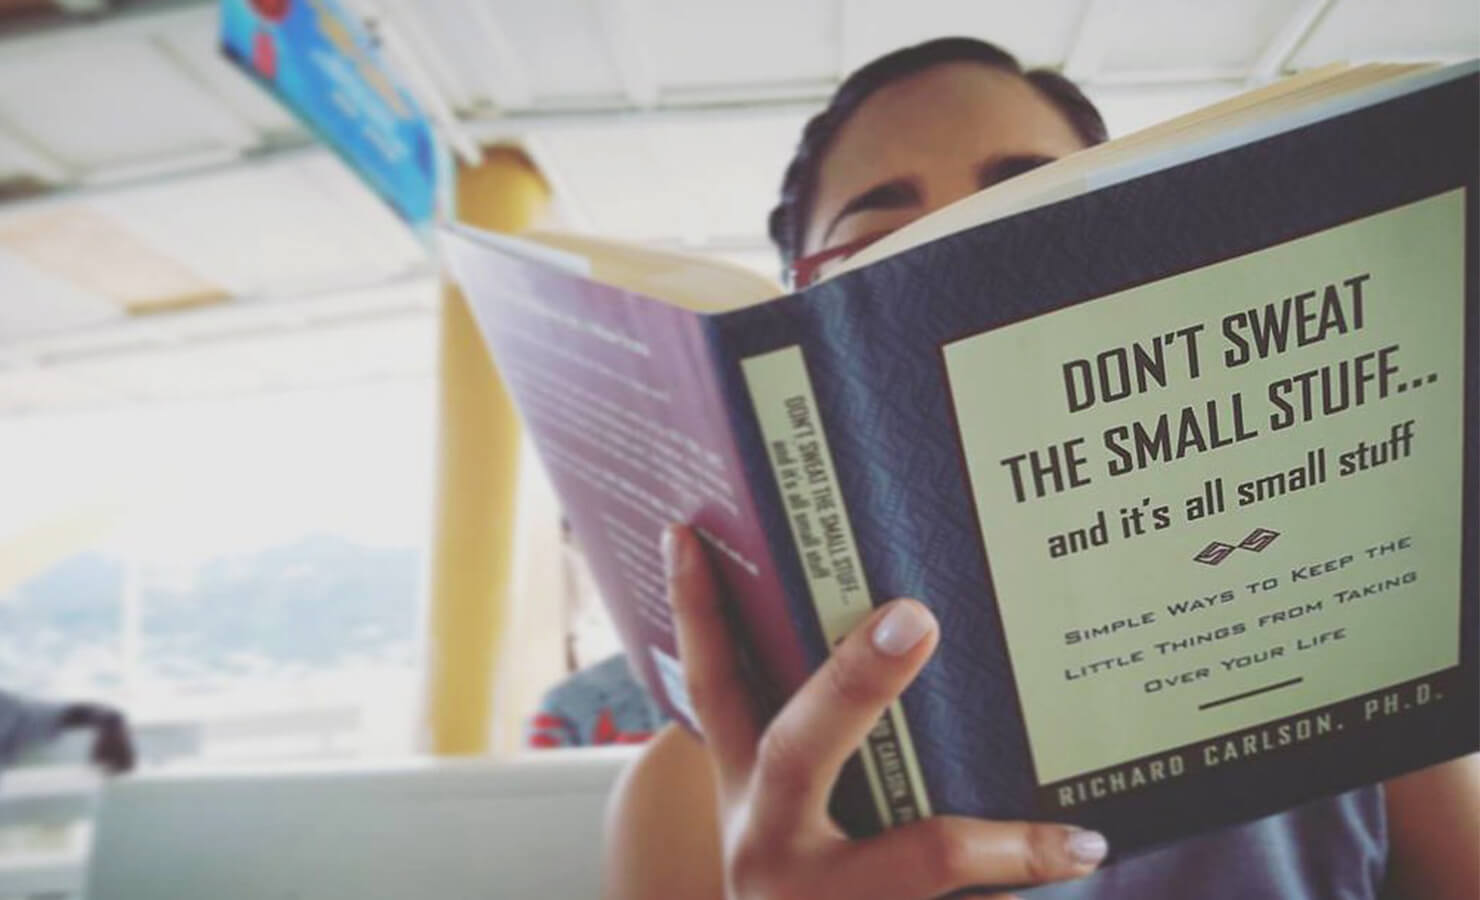 bloomthis-reads-series-03-dont-sweat-the-small-stuff-richard-carlson